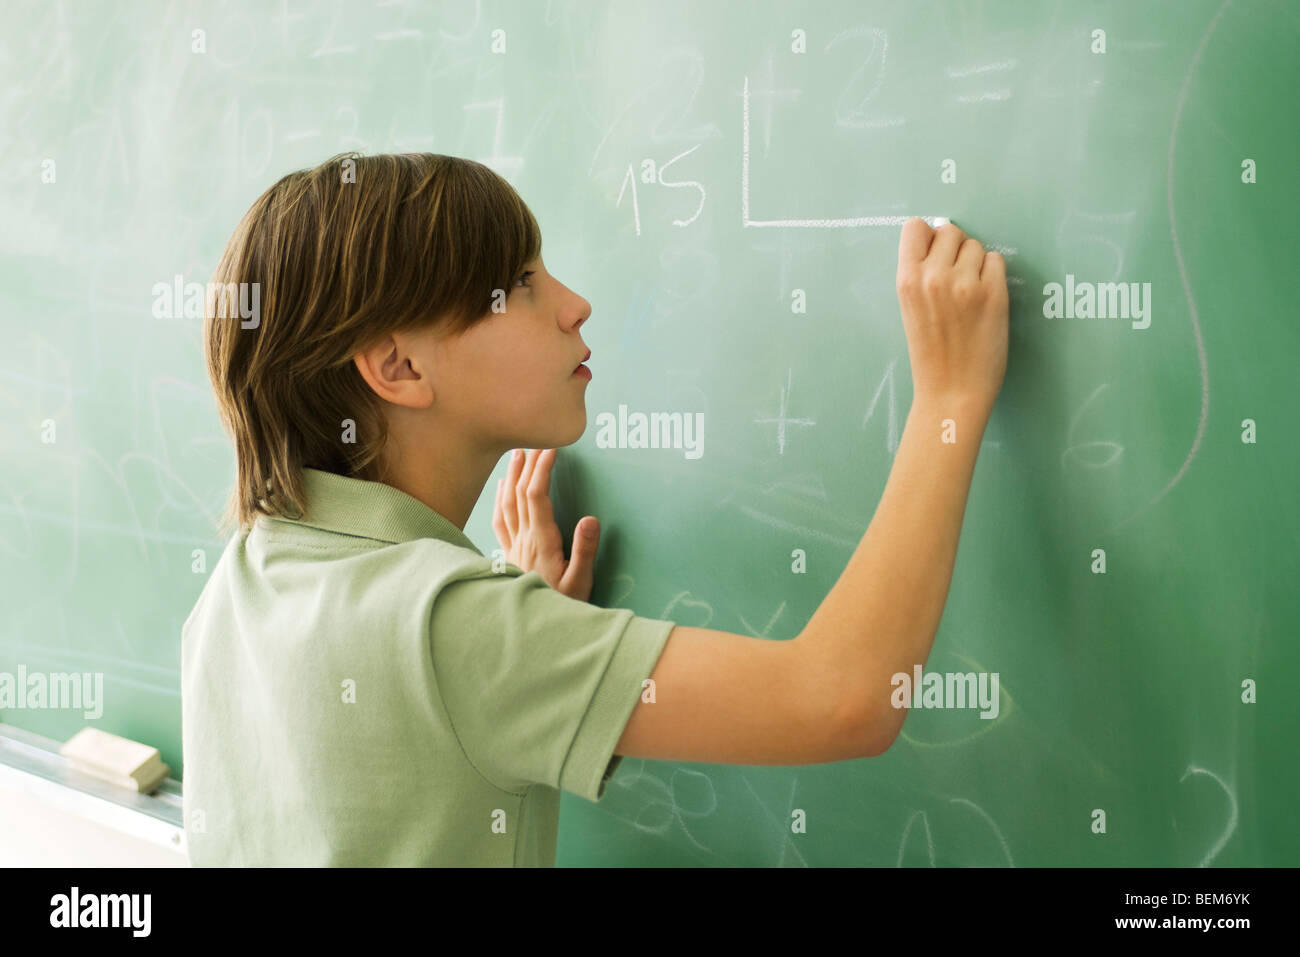 Boy writing on blackboard - Stock Image